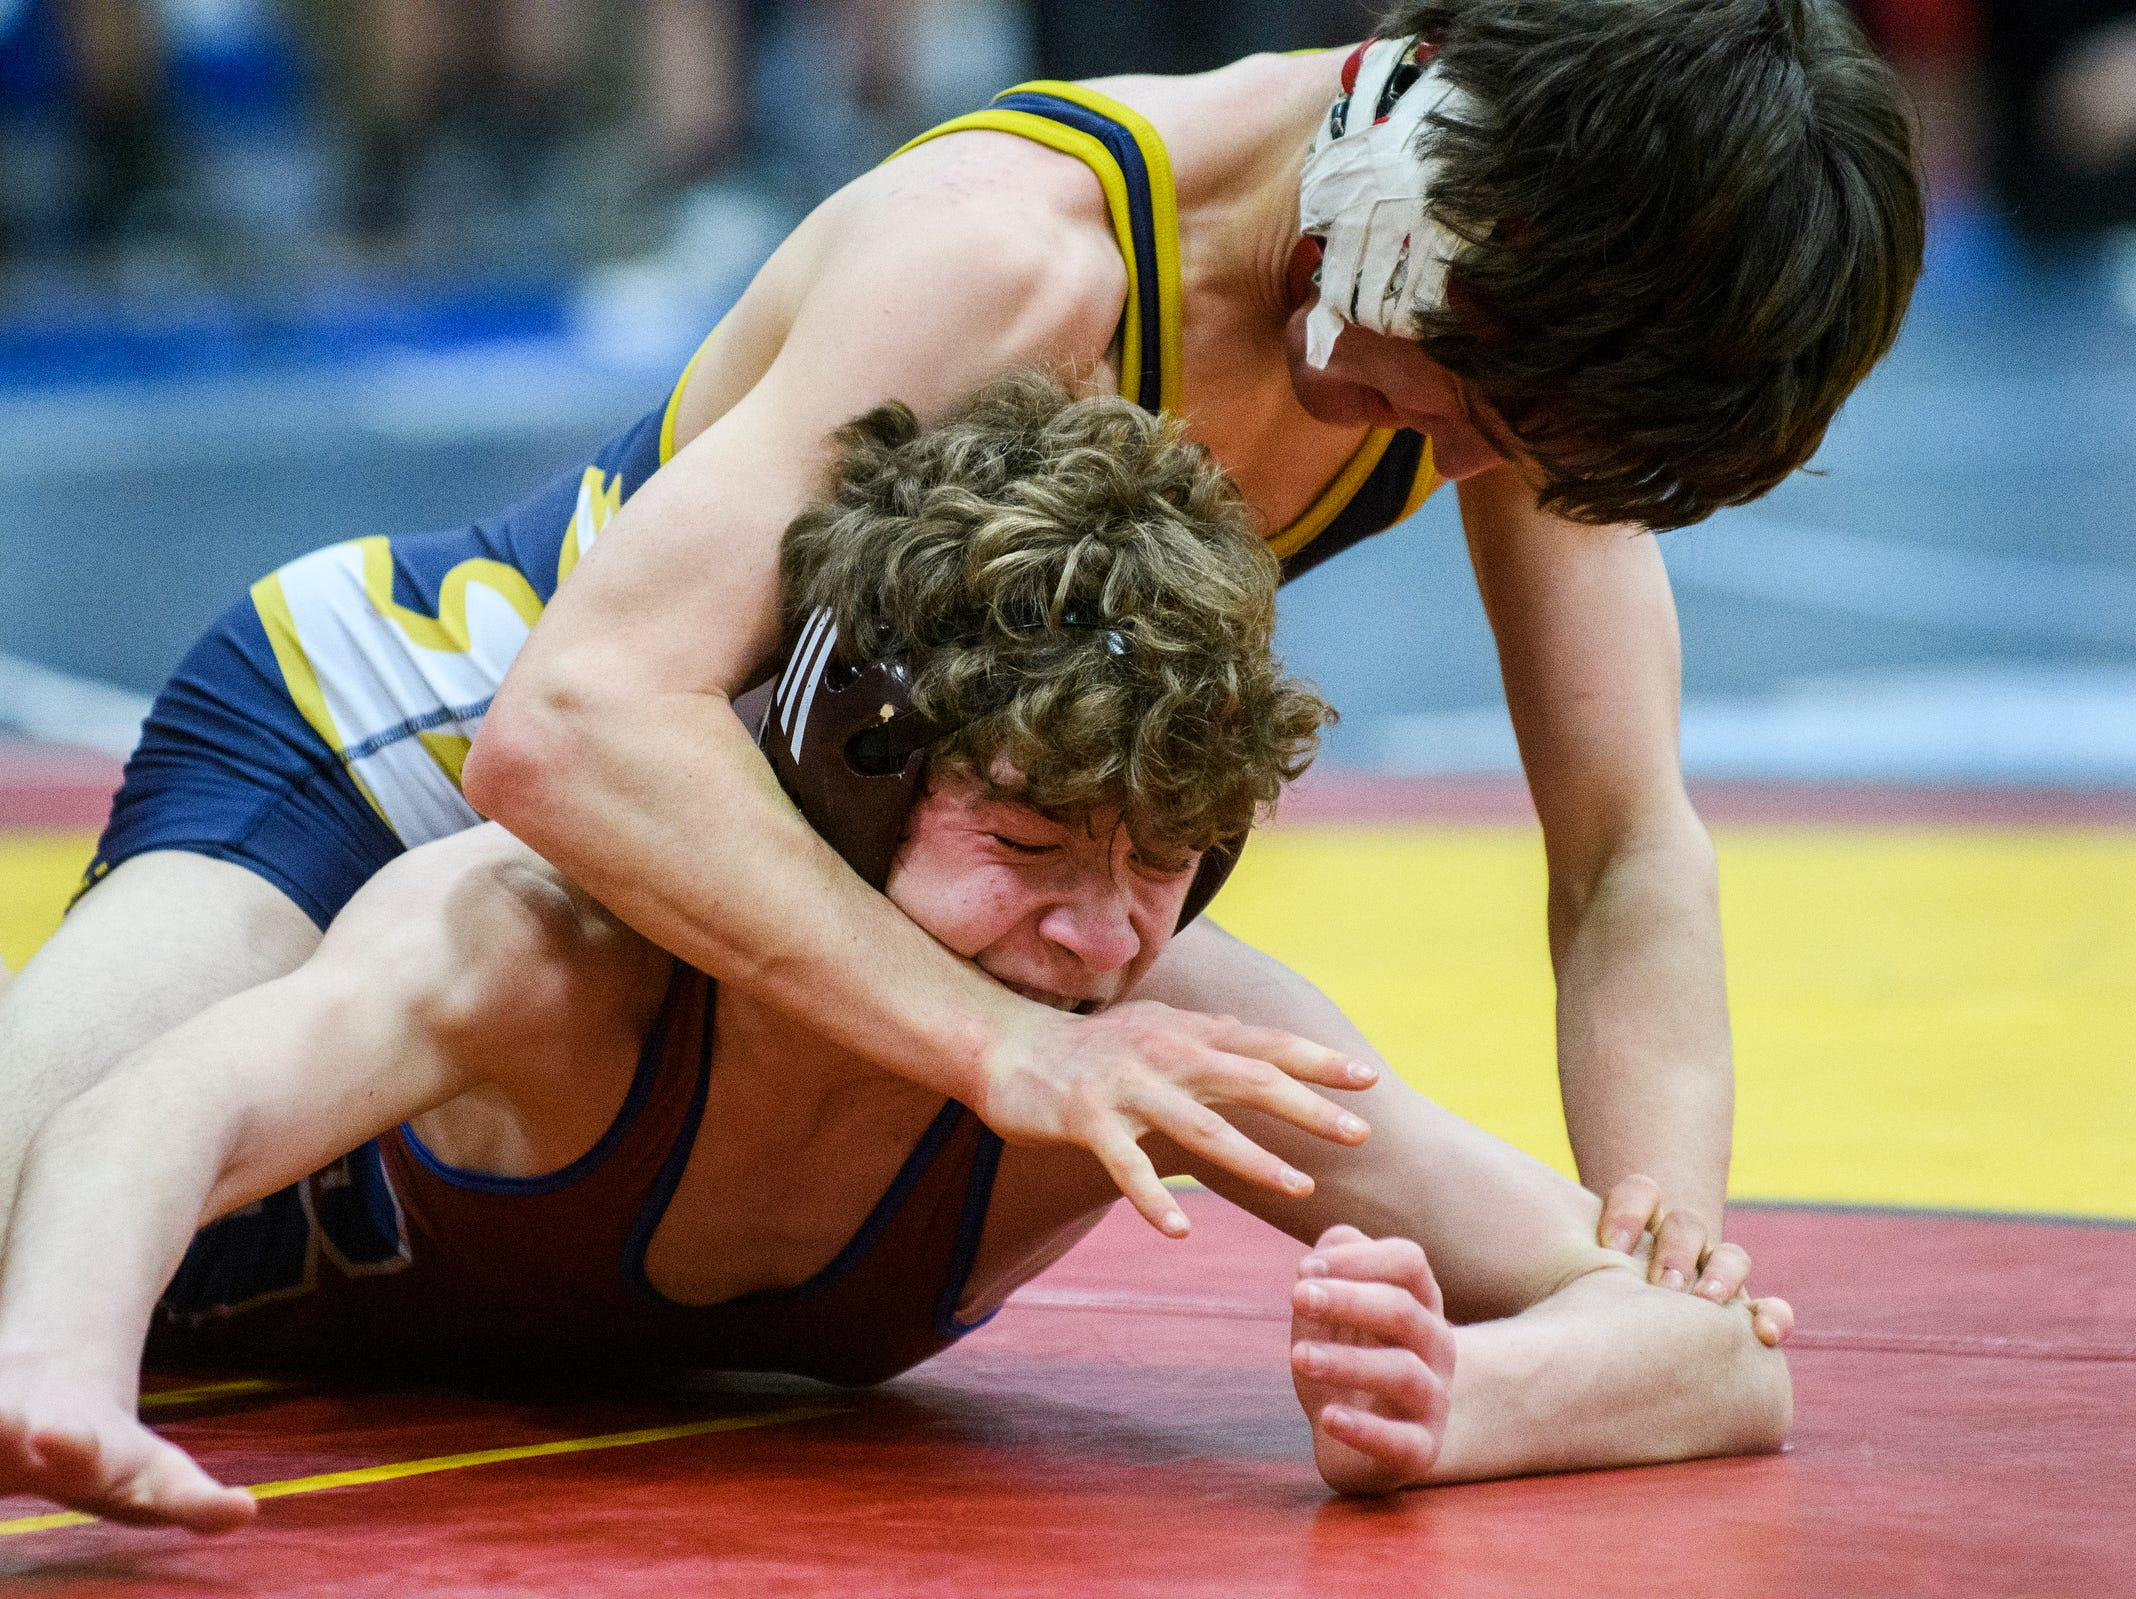 Essex's Ben Stewart wrestles with Spaulding's Hunter Roya during the Michael J. Baker Essex Classic wrestling tournament at Essex High School on Friday afternoon January 18, 2019 in Essex, Vermont.